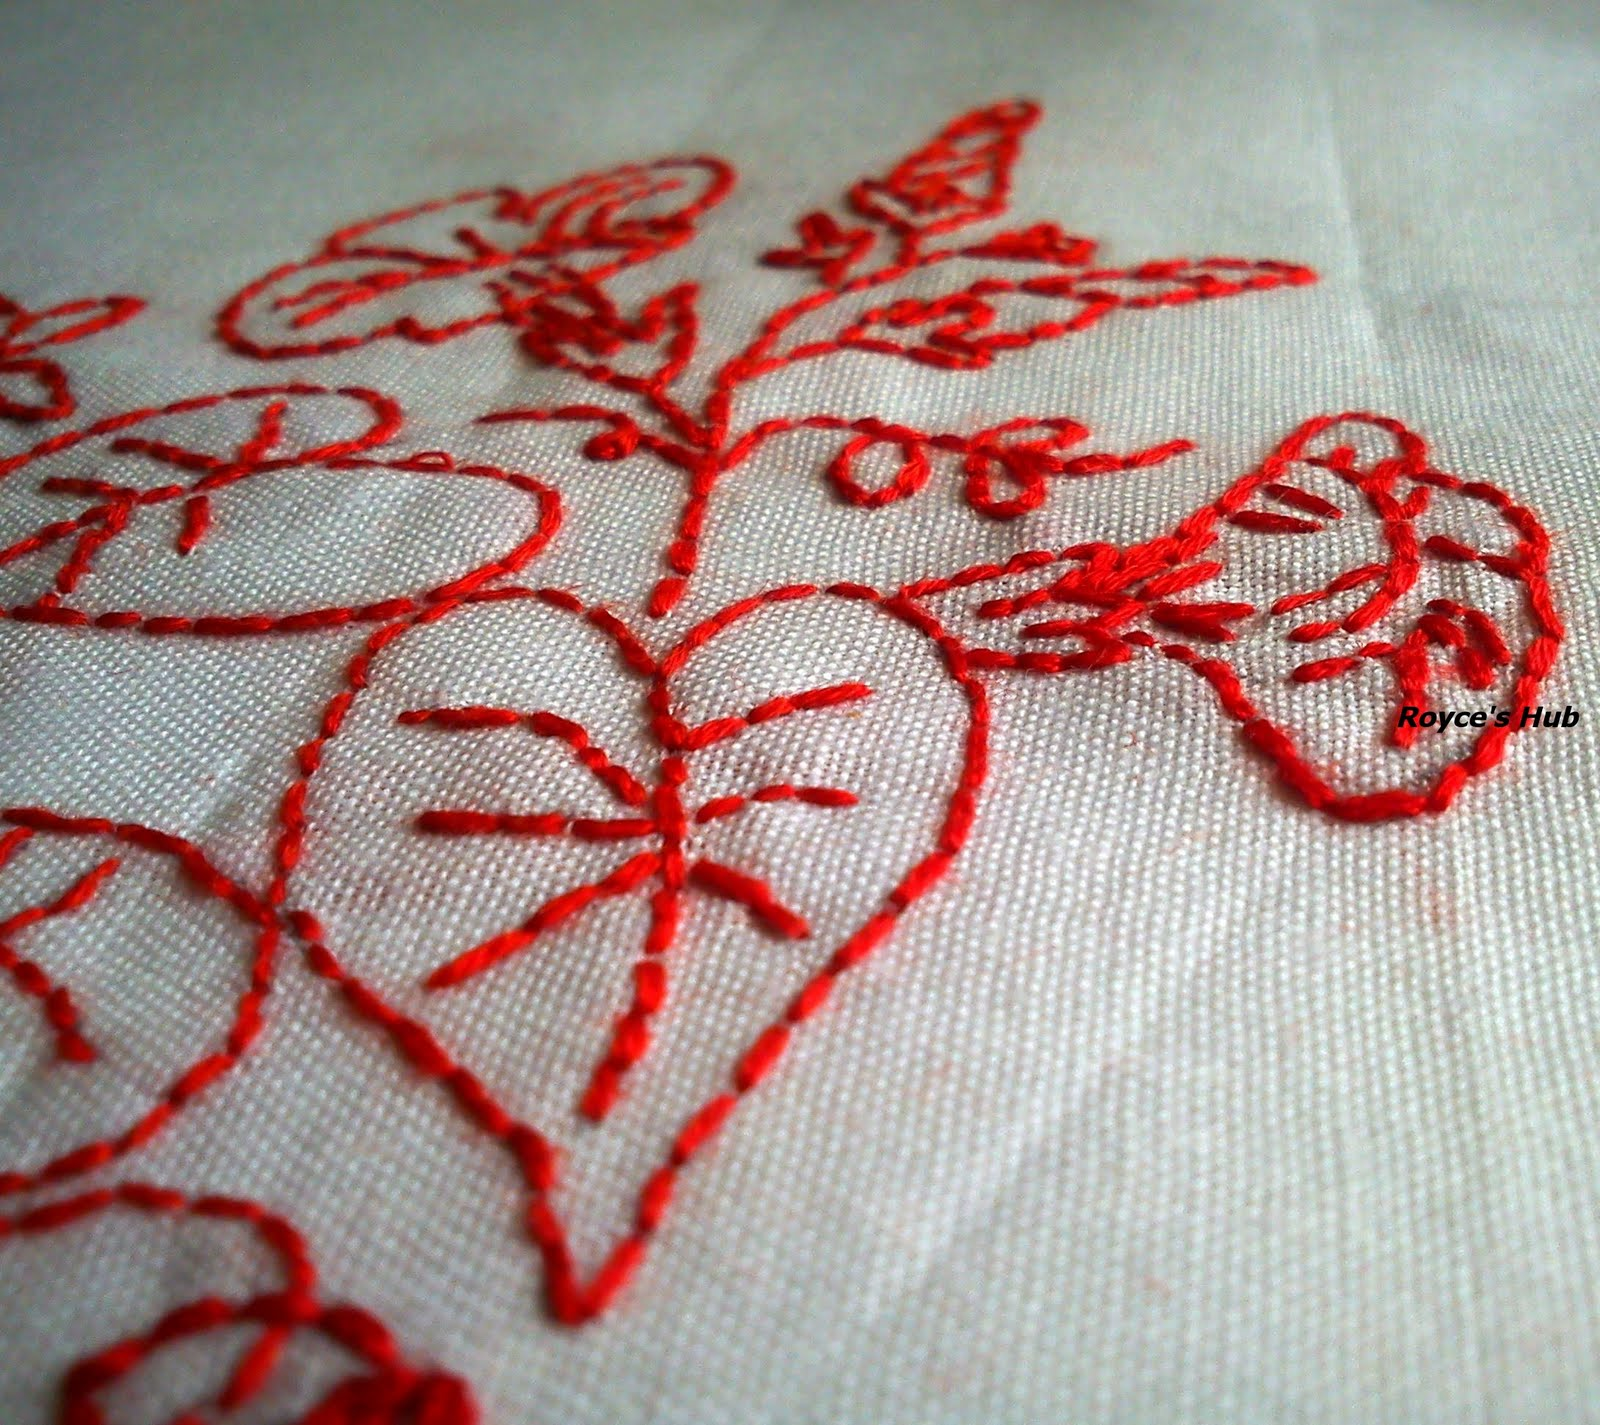 Royce s hub basic embroidery stitches back stitch in